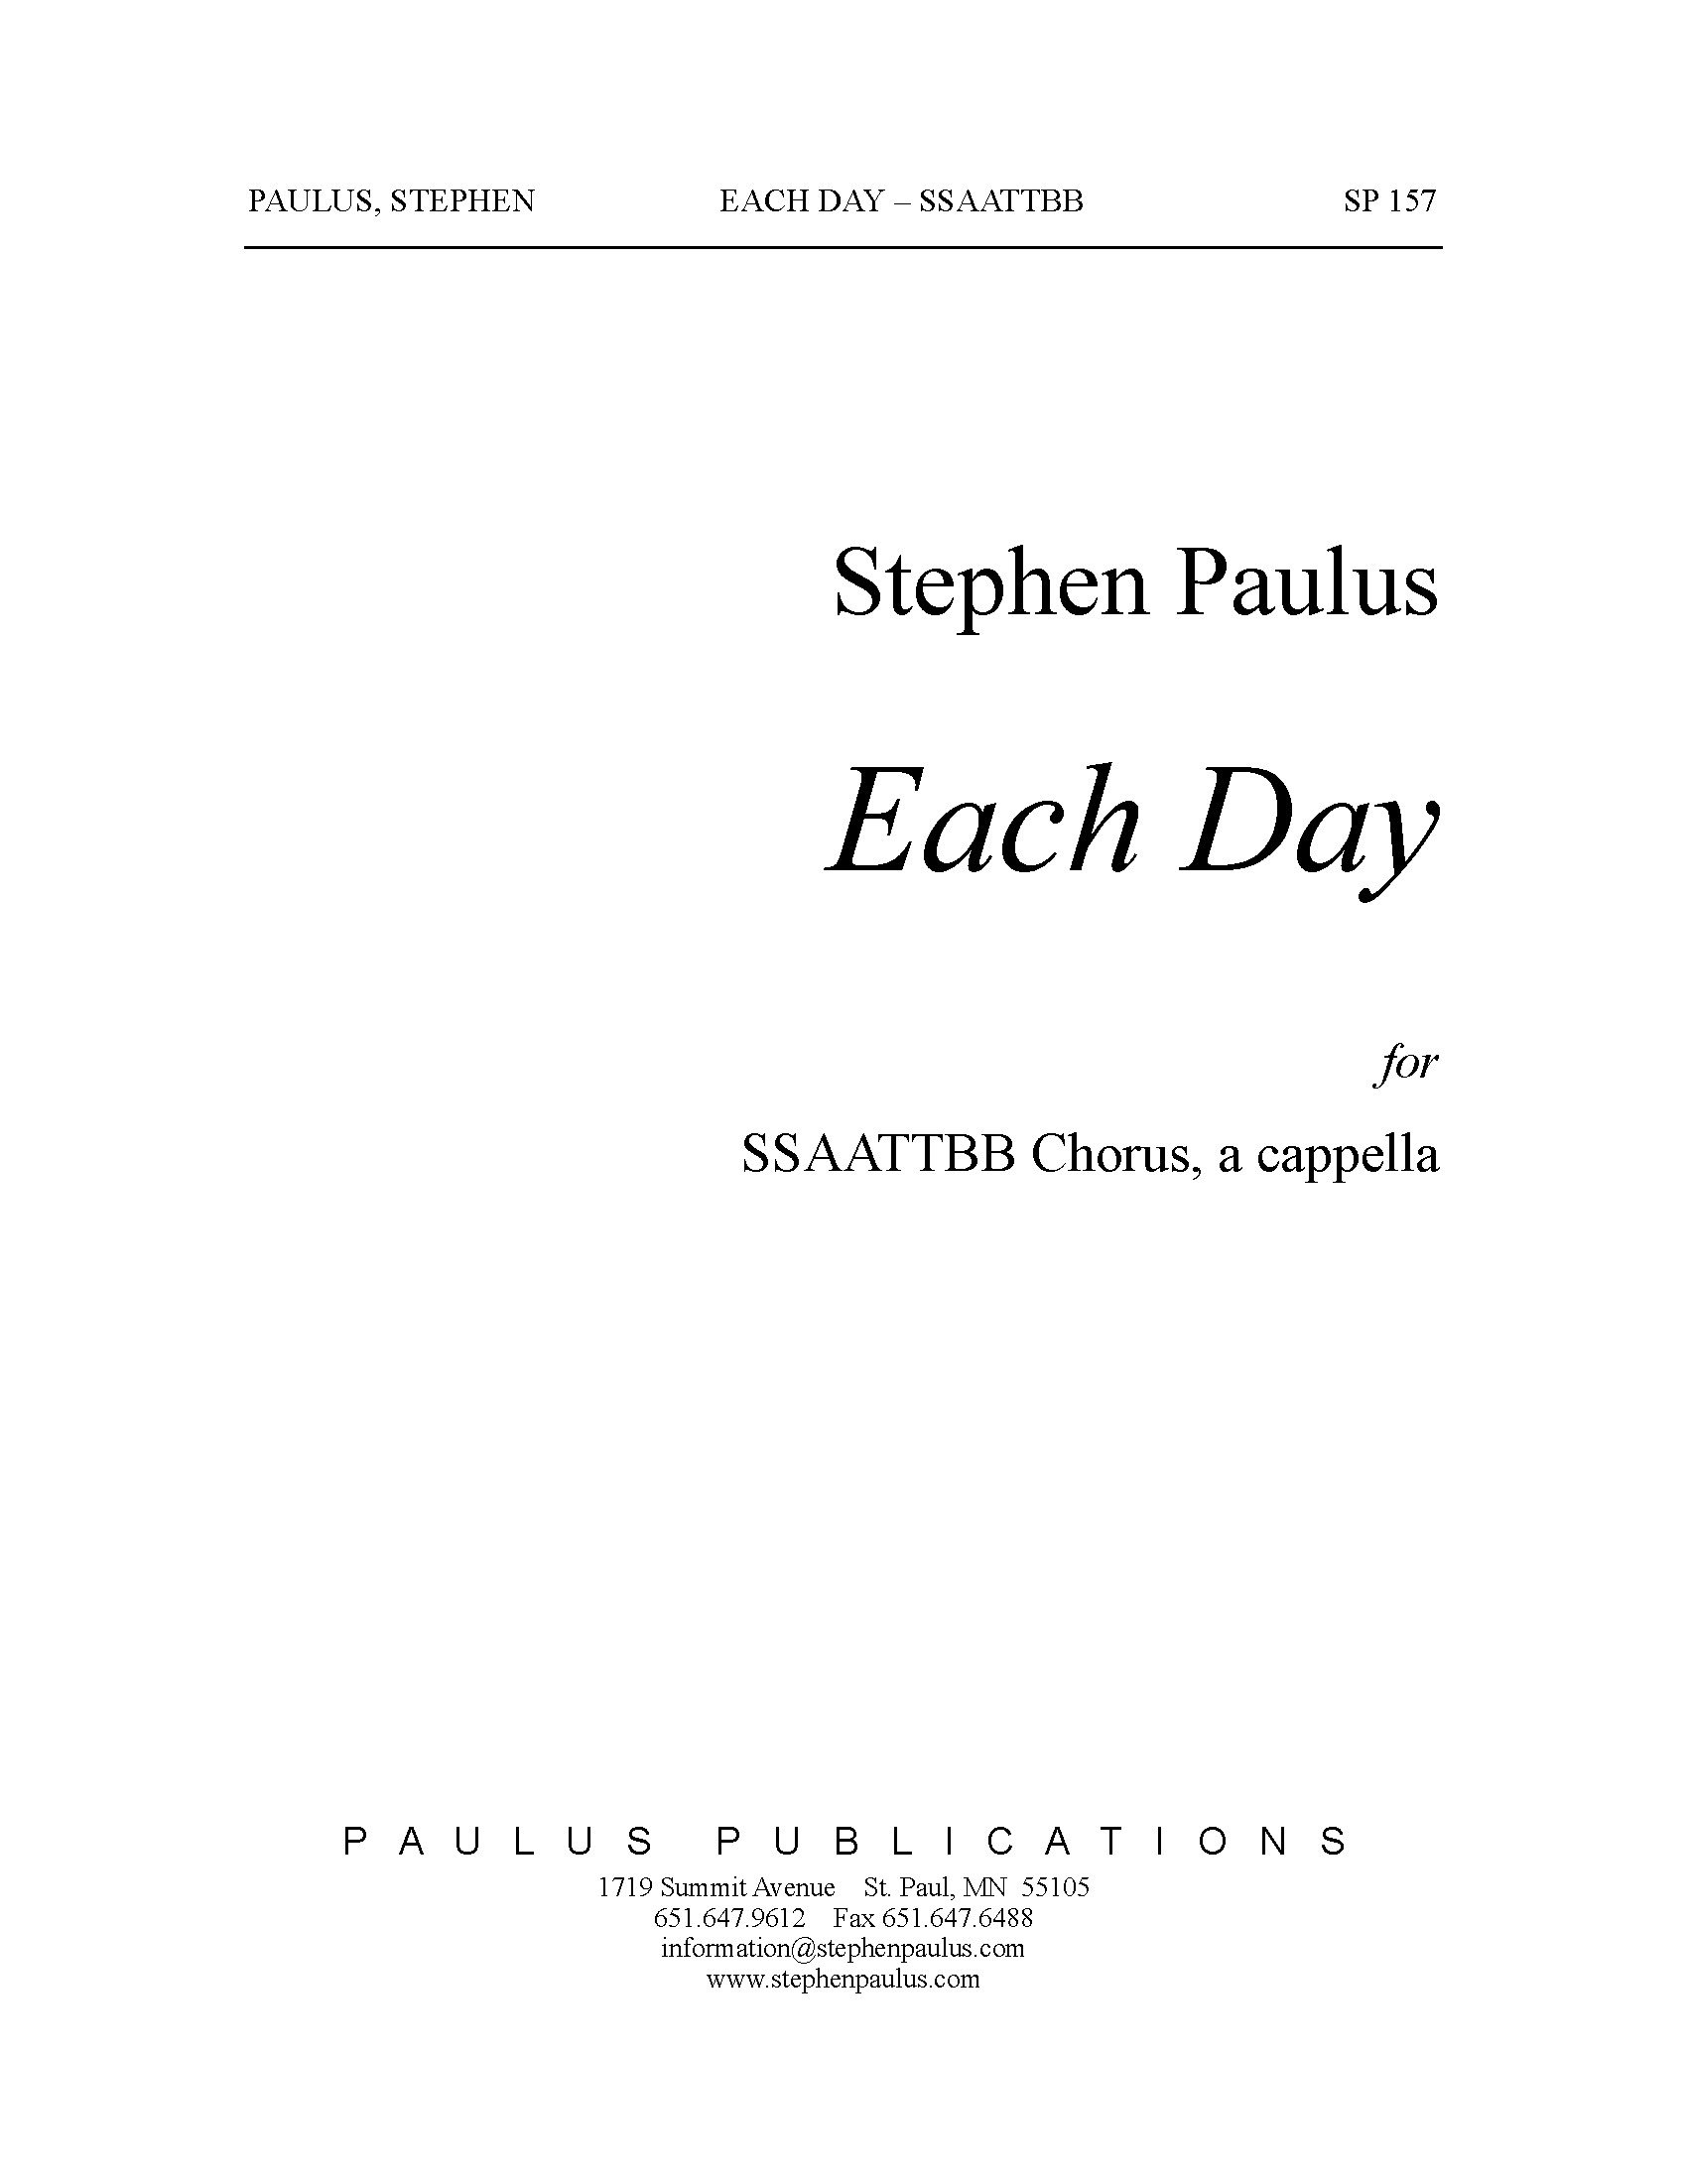 Each Day for SSAATTBB Chorus, a cappella